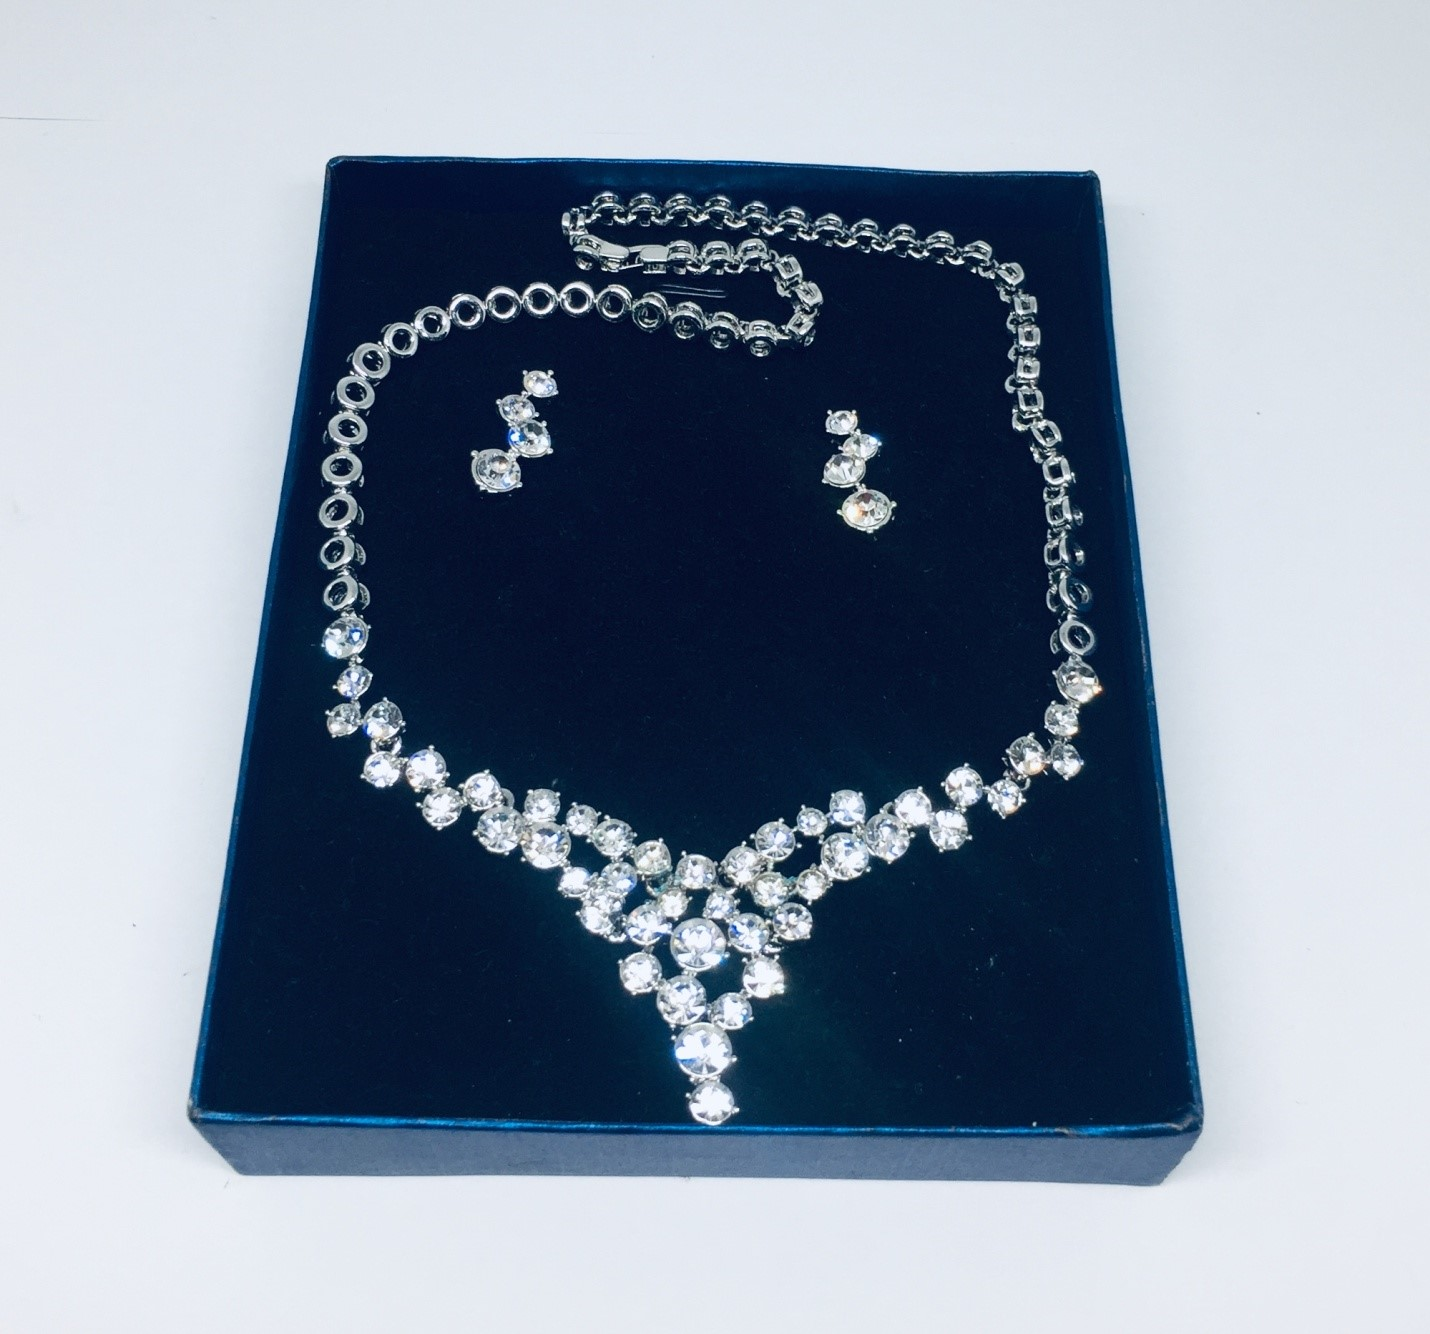 Silver Diamond Gemstones Necklace and Earrings Fashion Jewelry Set